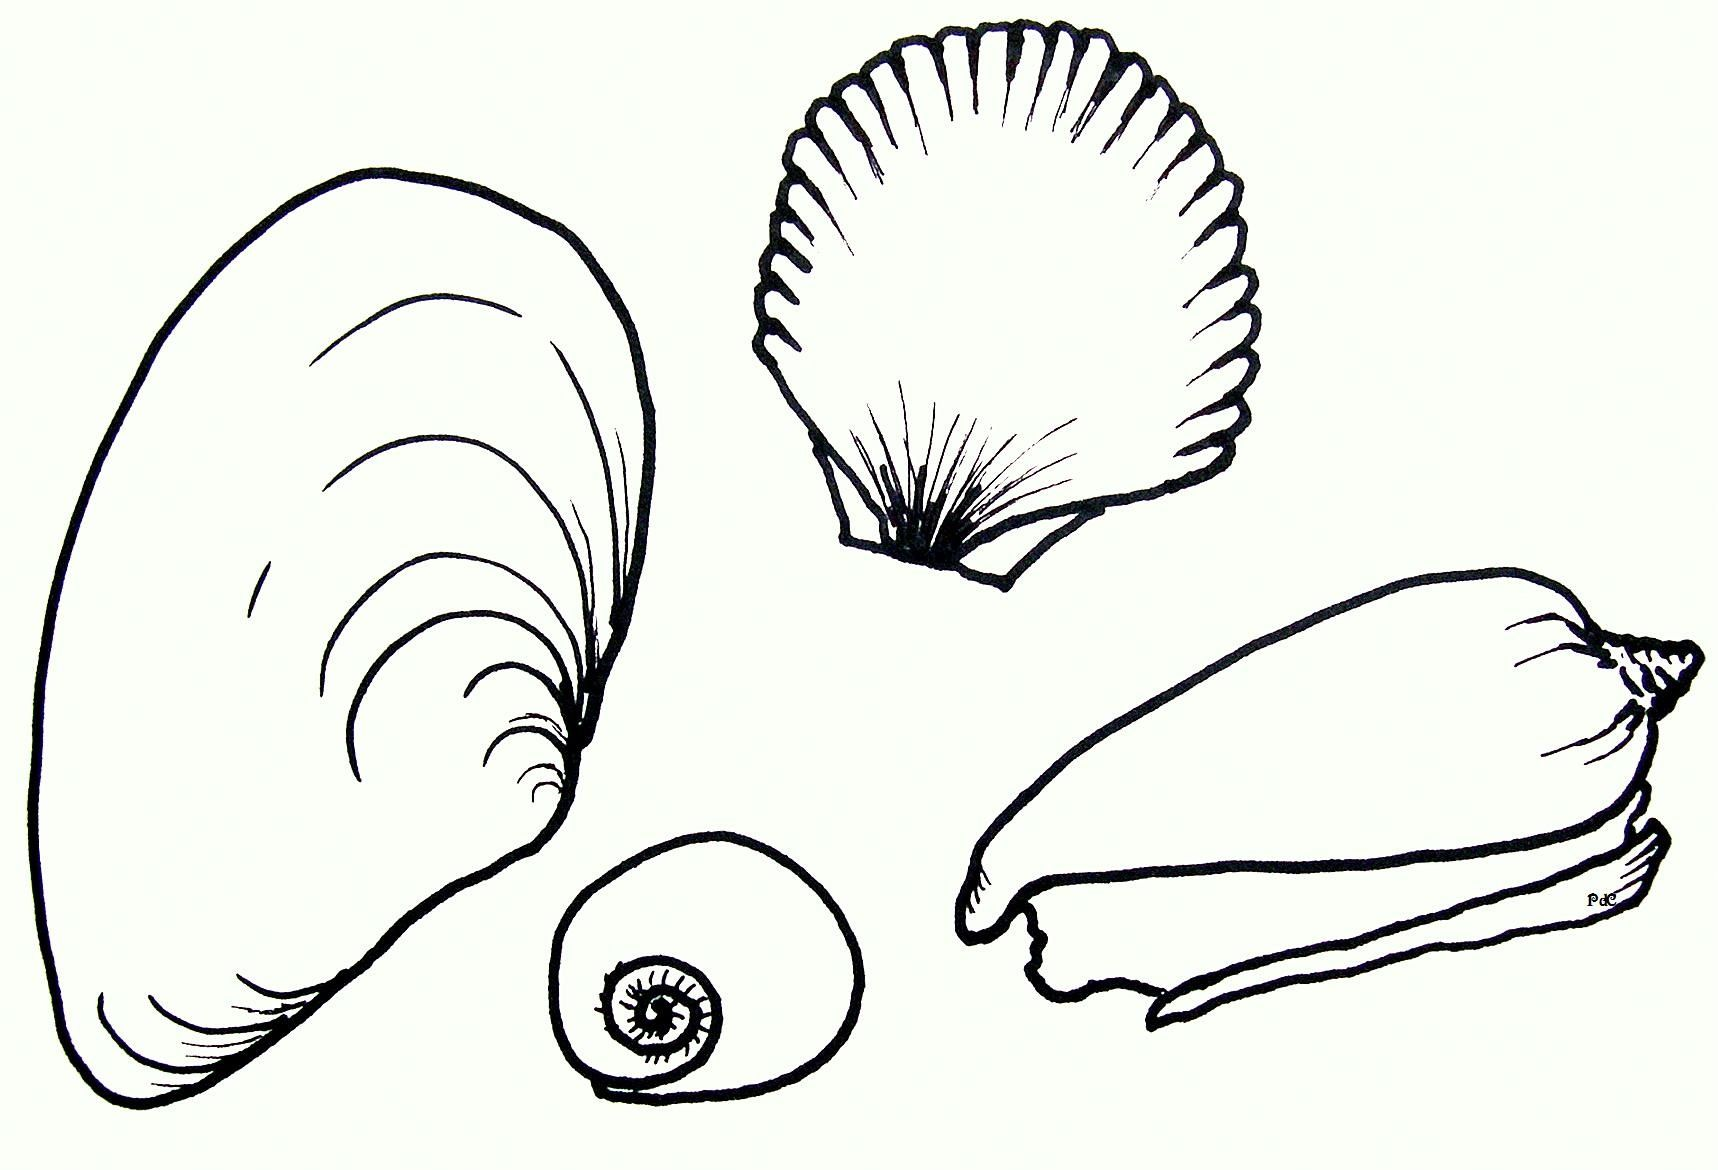 Free Printable Seashell Coloring Pages For Kids Farm Animal Coloring Pages Coloring Pages Animal Coloring Pages